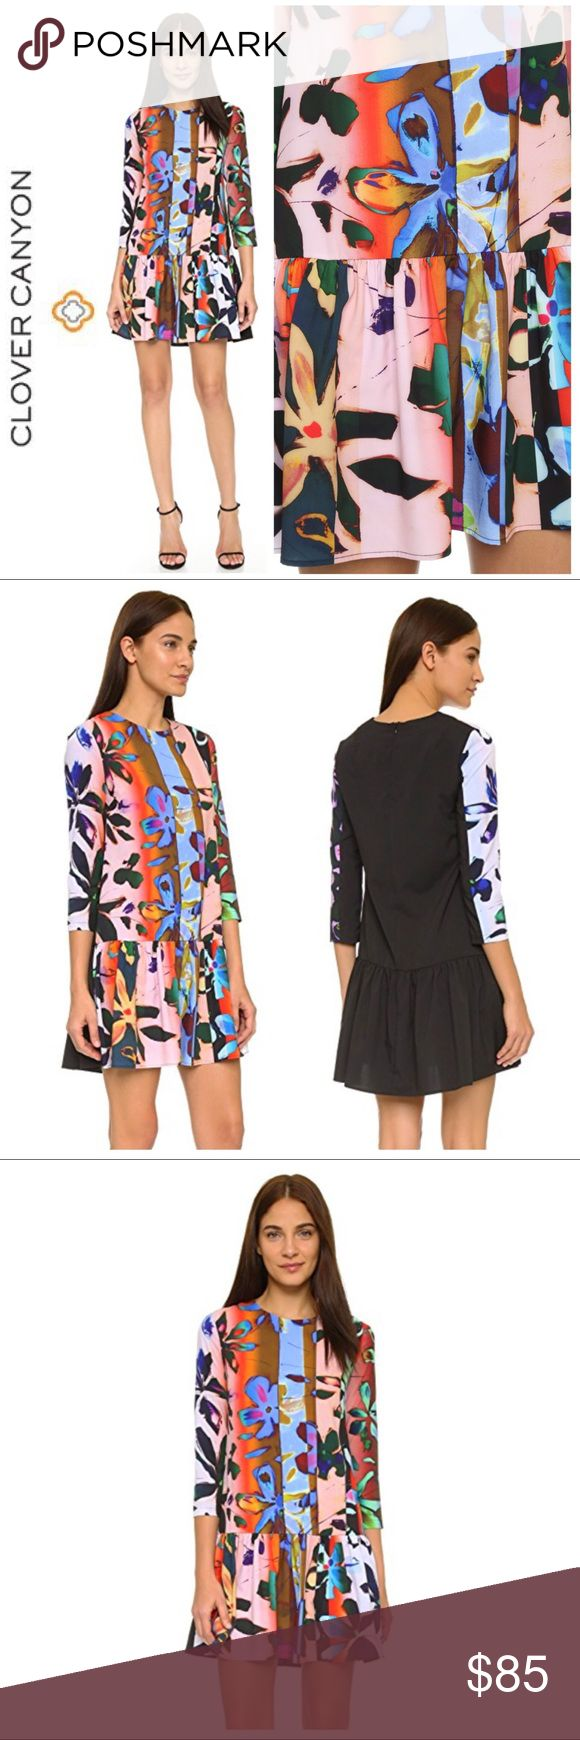 """Clover Canyon Riviera Sunrise Tunic Dress From the Resort '16 Collection, this dress from Clover Canyon is bold & vivid with abstract stripes and flowers. Highly sought after print and very rare dress style! The back is solid black and has a hidden zipper. Drop waist style with slight flare to skirt. 3/4 length sleeves. Loose, flowing fit. Size Small. Measurements: Chest 18"""". Drop Waist 20"""". Length (from top of shoulder) to drop waist 26"""" to bottom hem 36"""". 96% polyester 4% spandex. Like new…"""